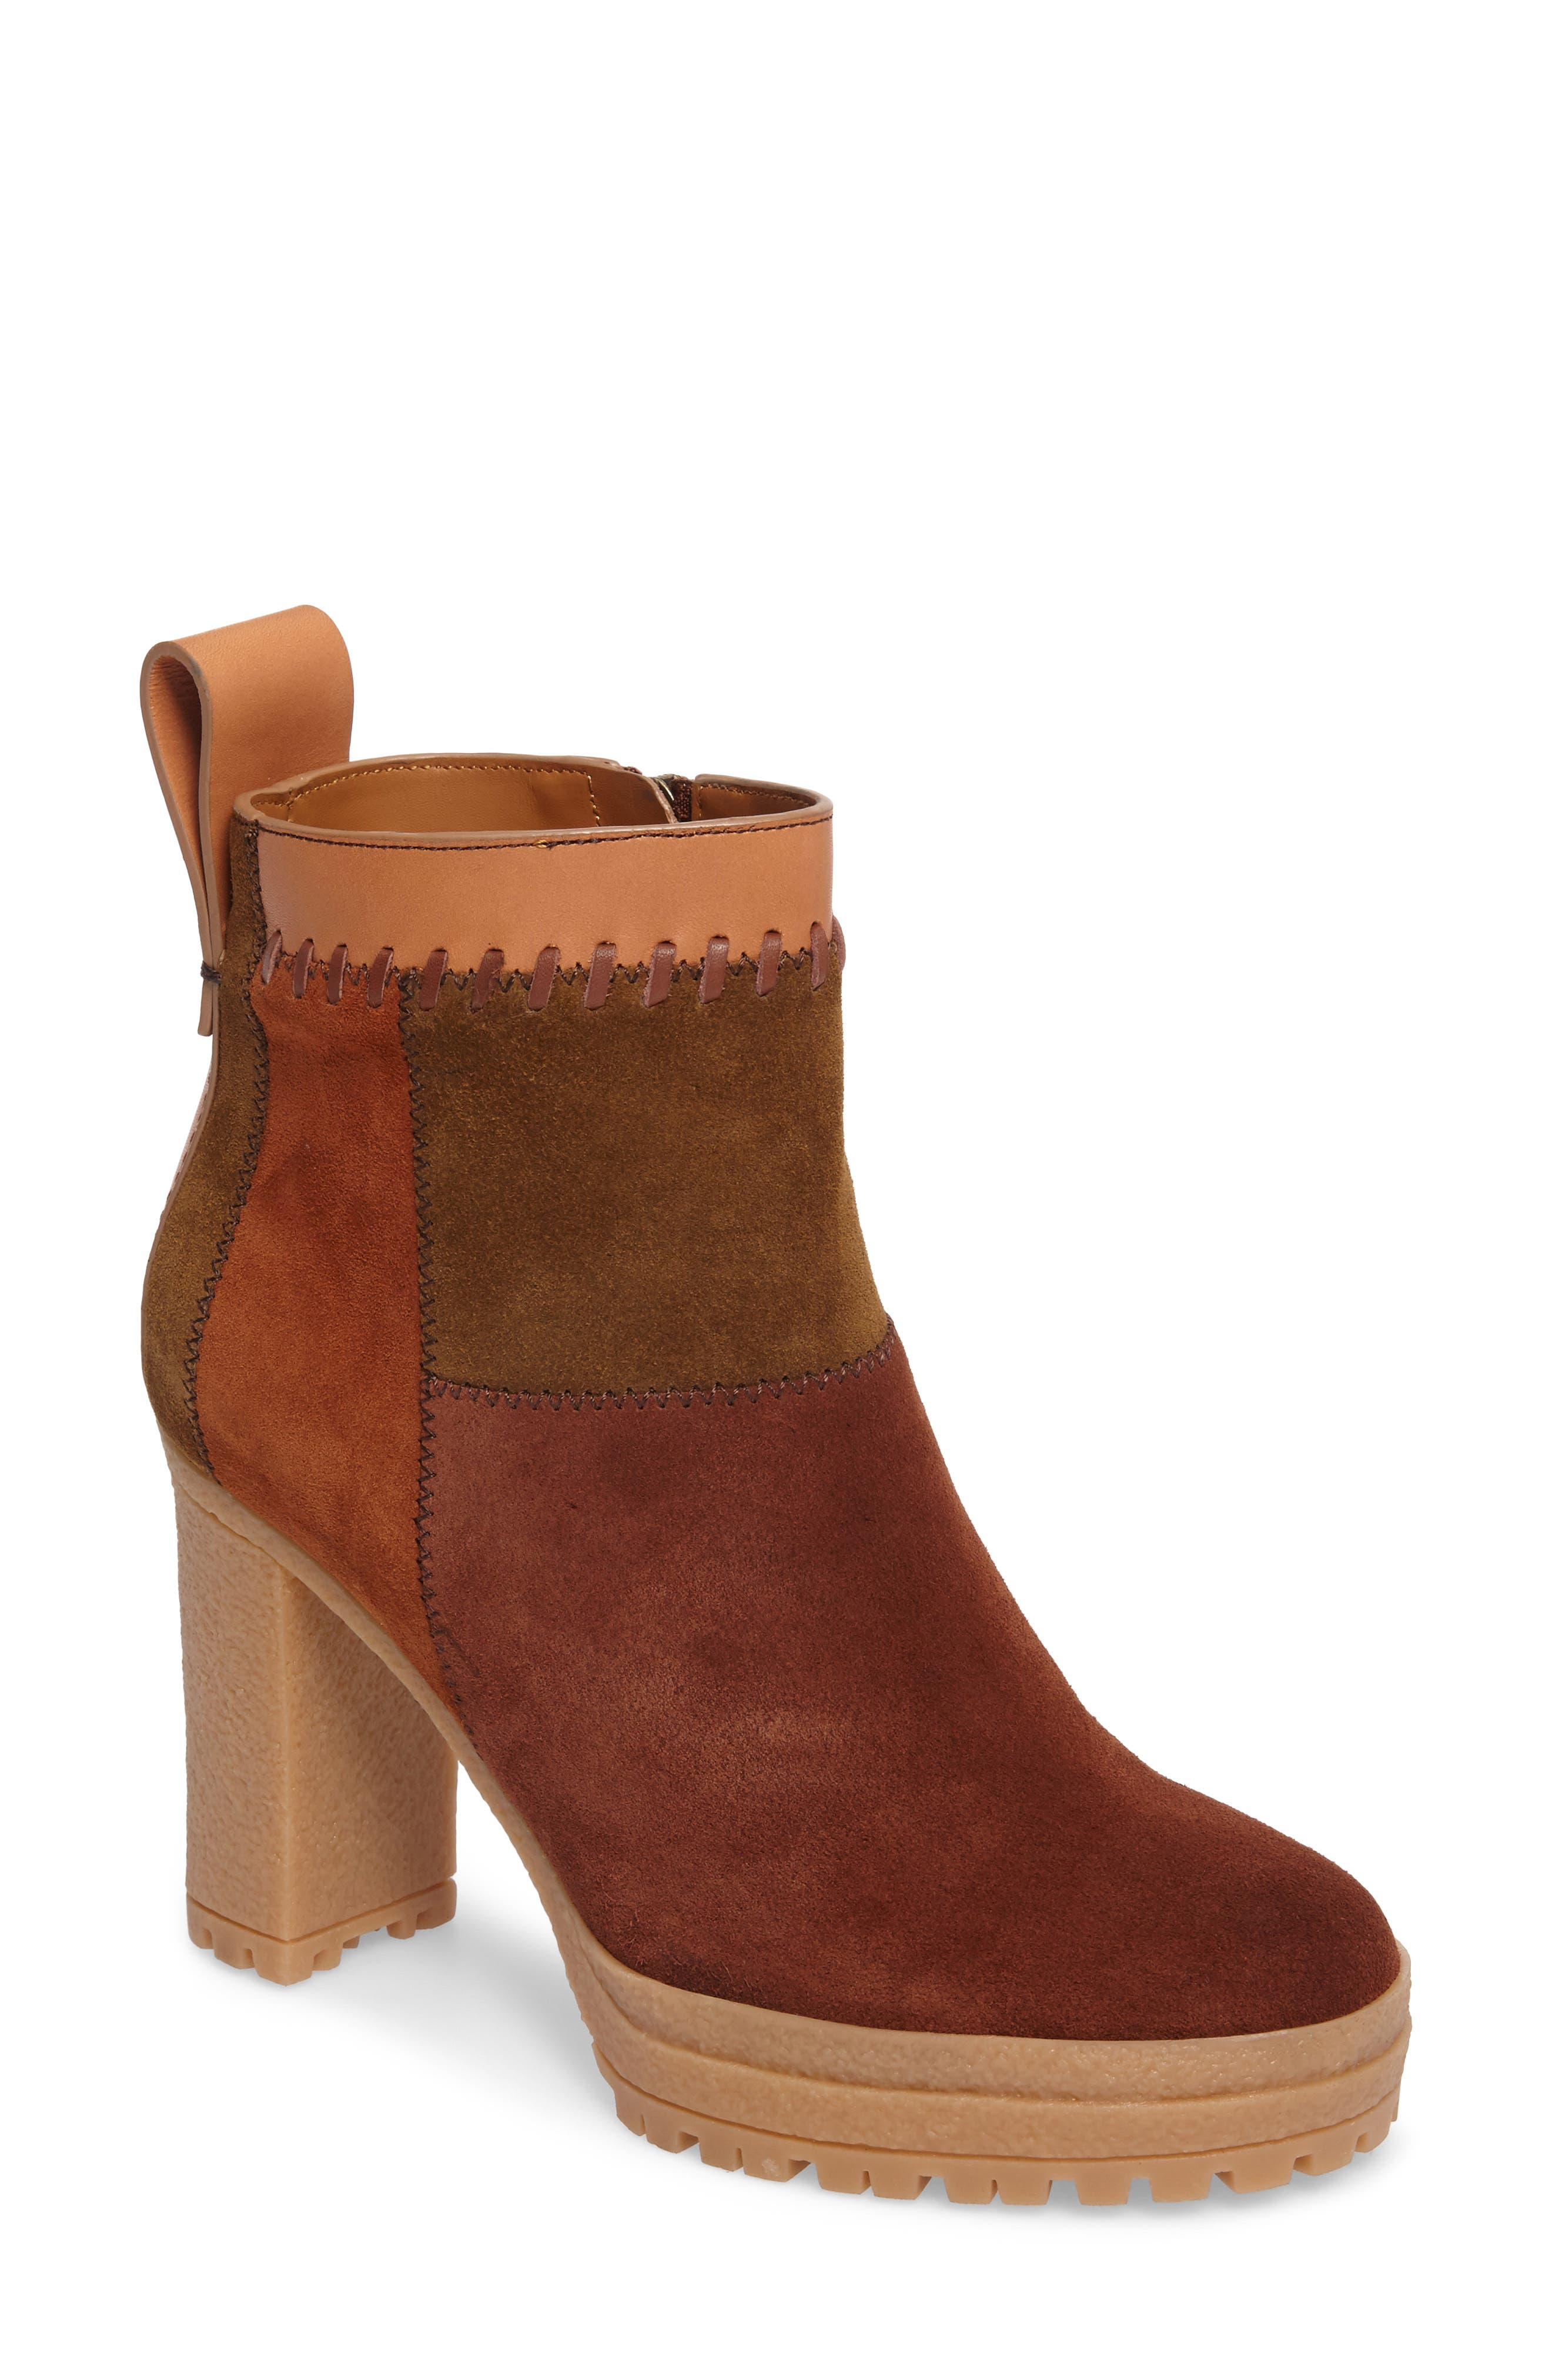 Polina Patchwork Bootie,                         Main,                         color, Brown Multi